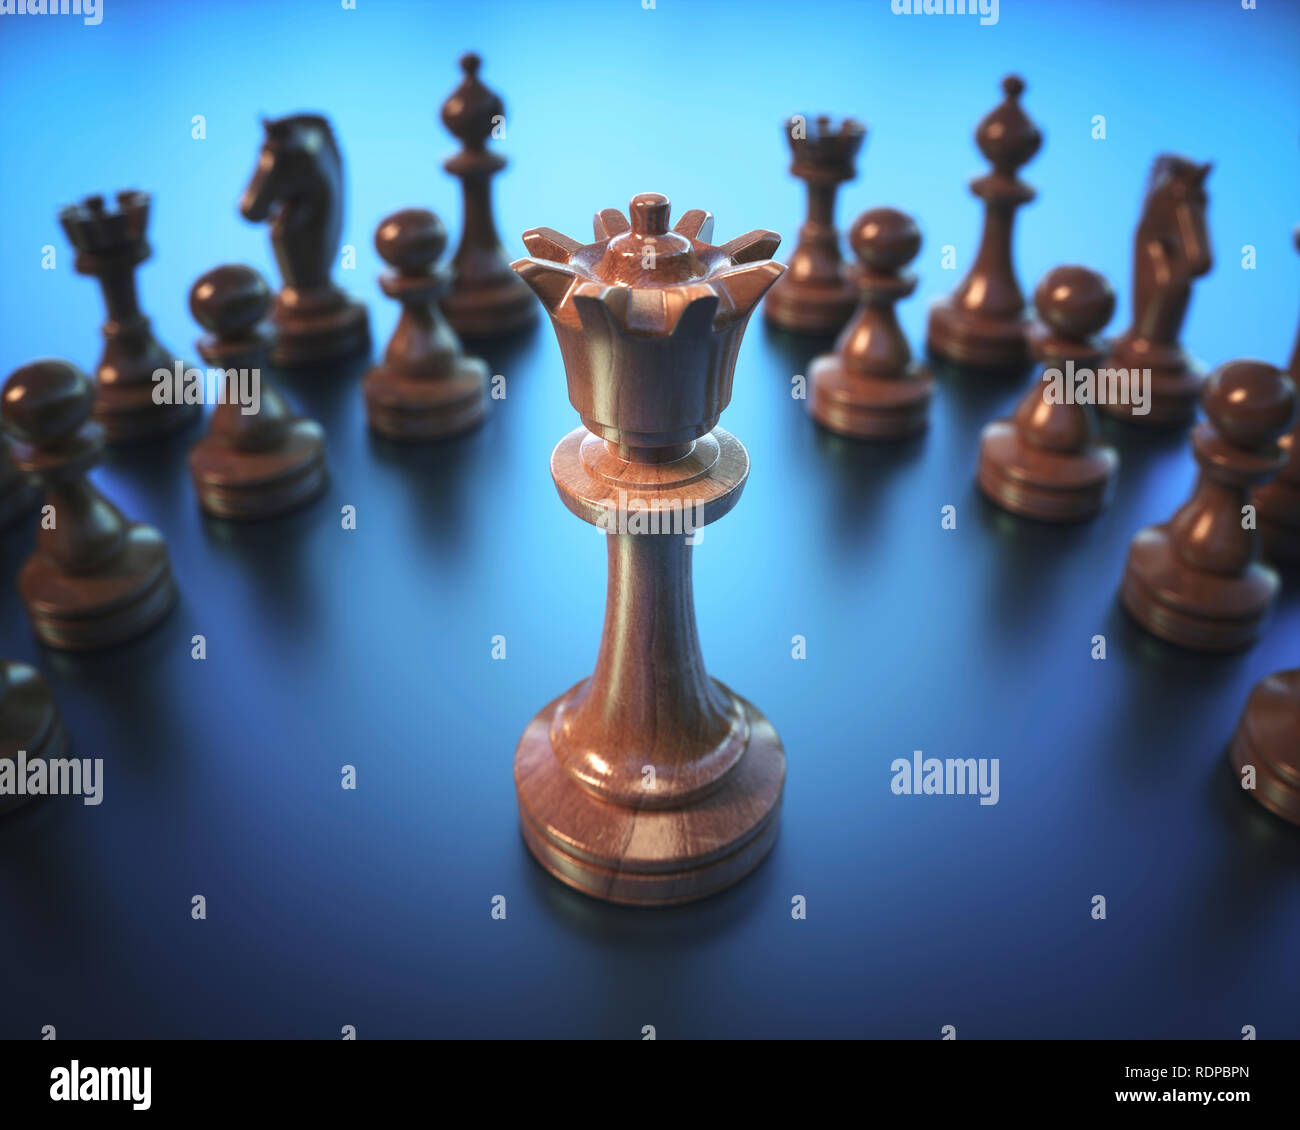 Chess queen surrounded by pieces, illustration. - Stock Image